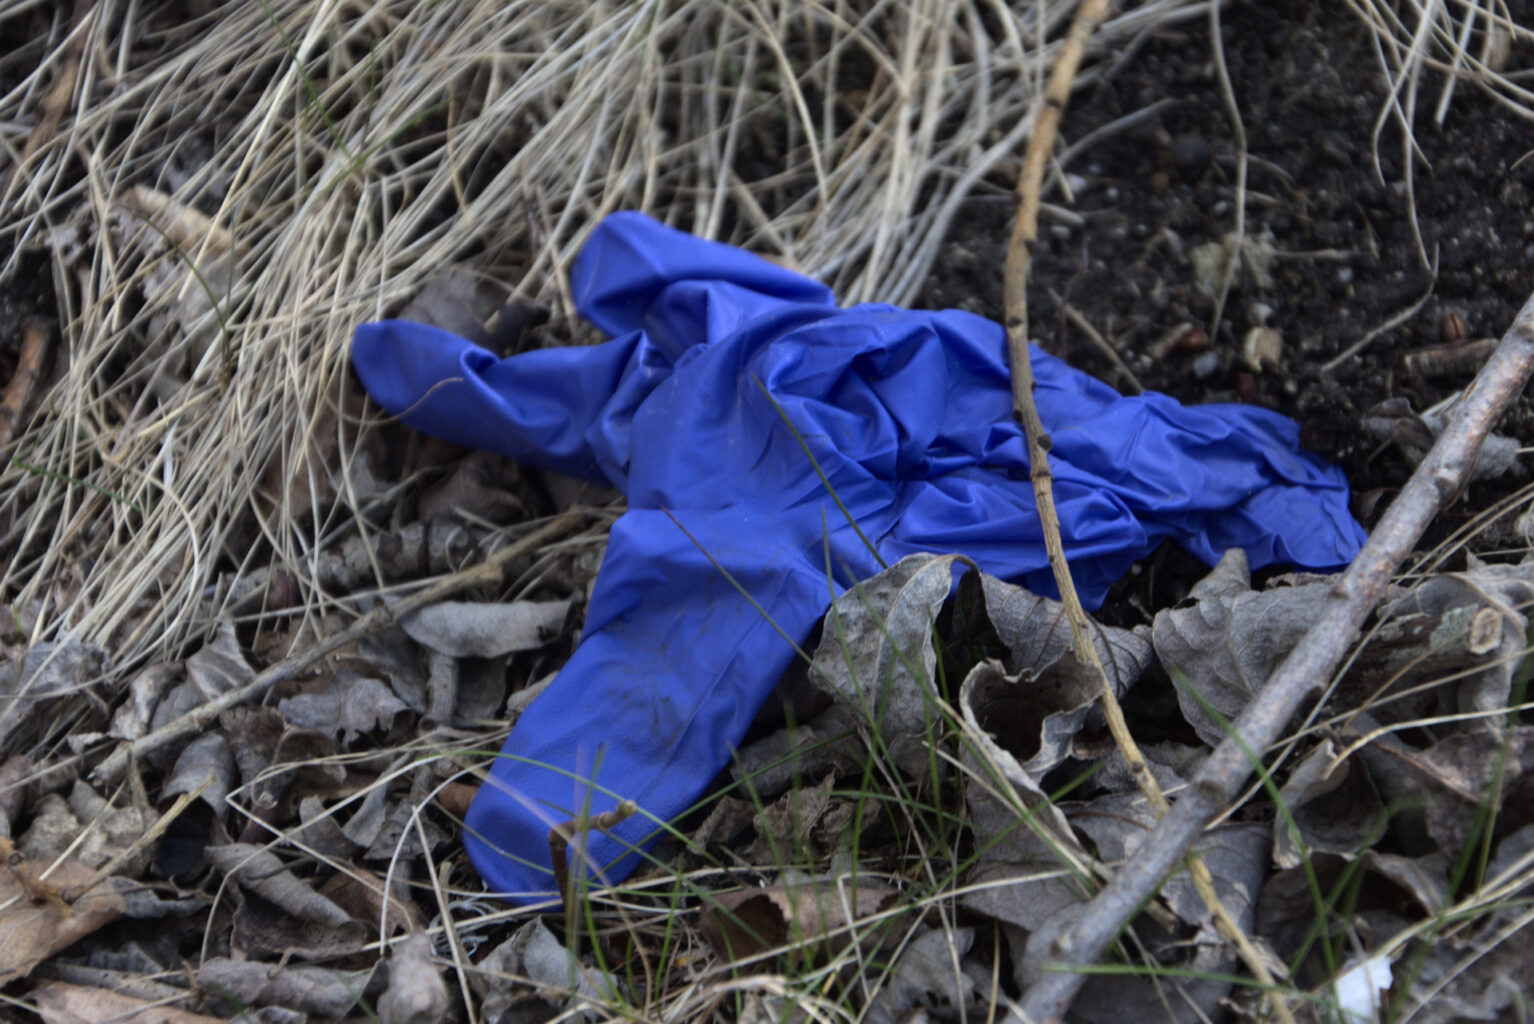 Protective rubber or plastic glove in the grass